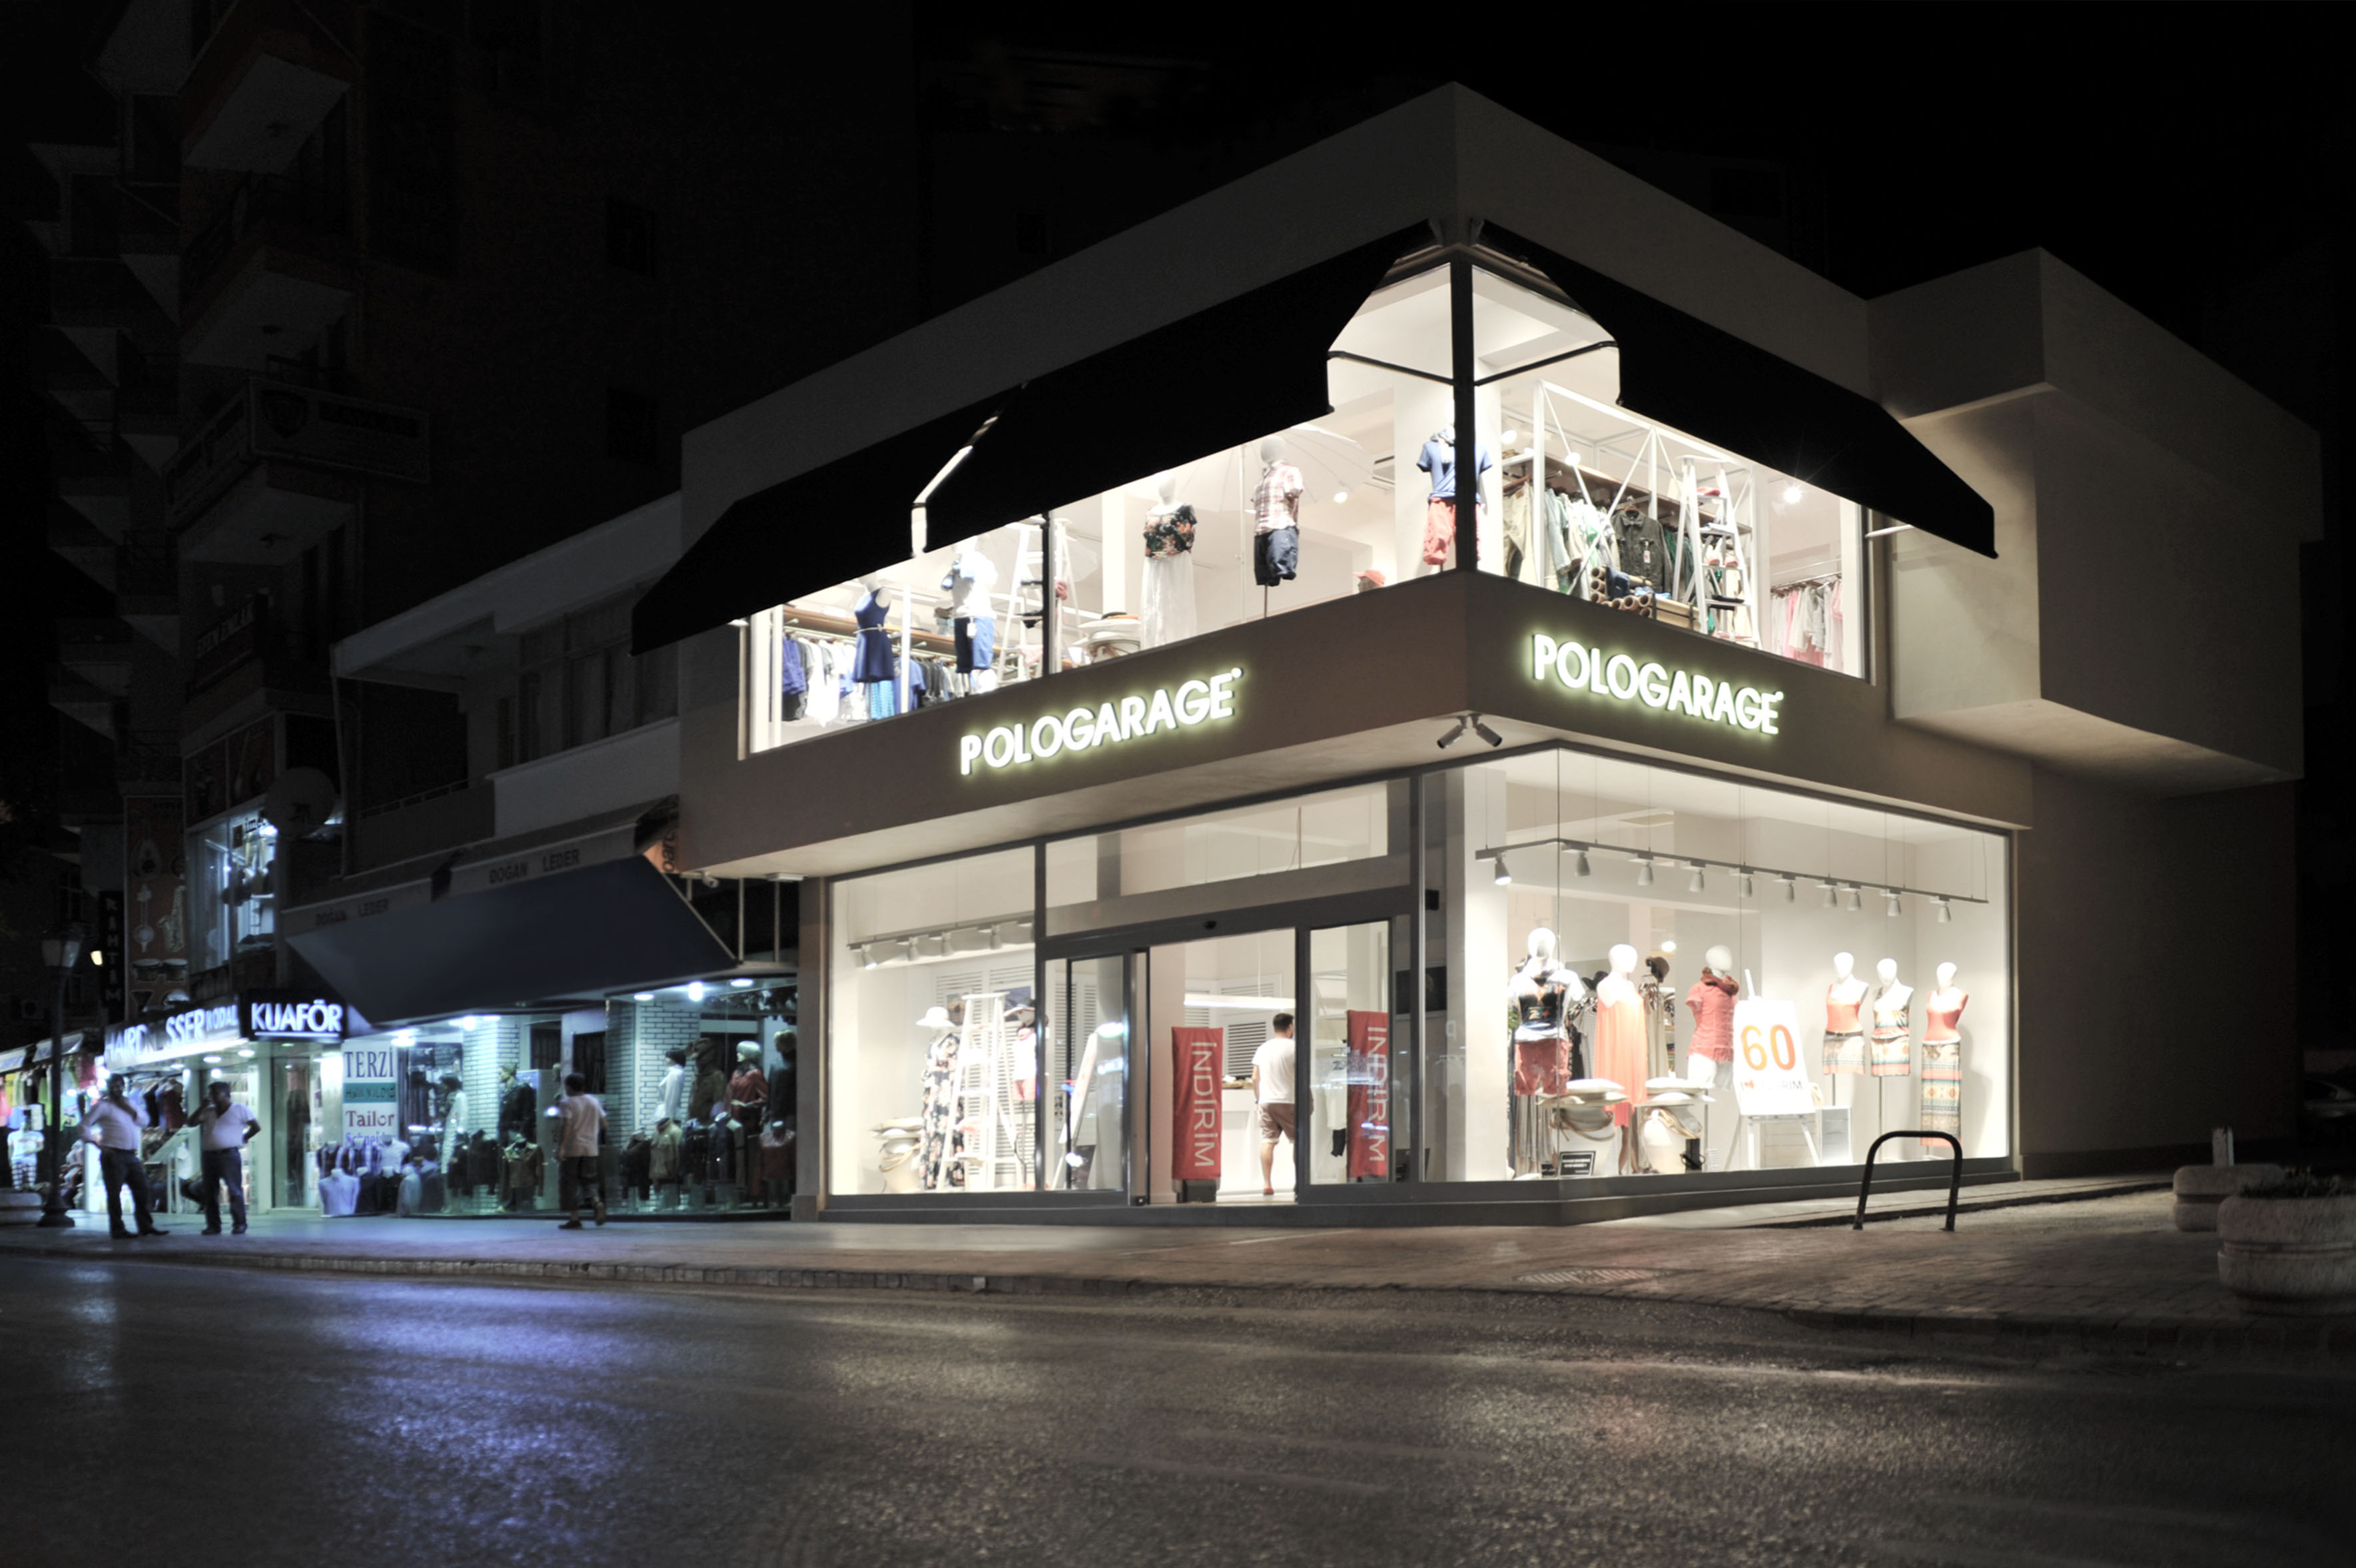 Polo garage store in alanya qubicum archello - Polo garage turkiye online shop ...